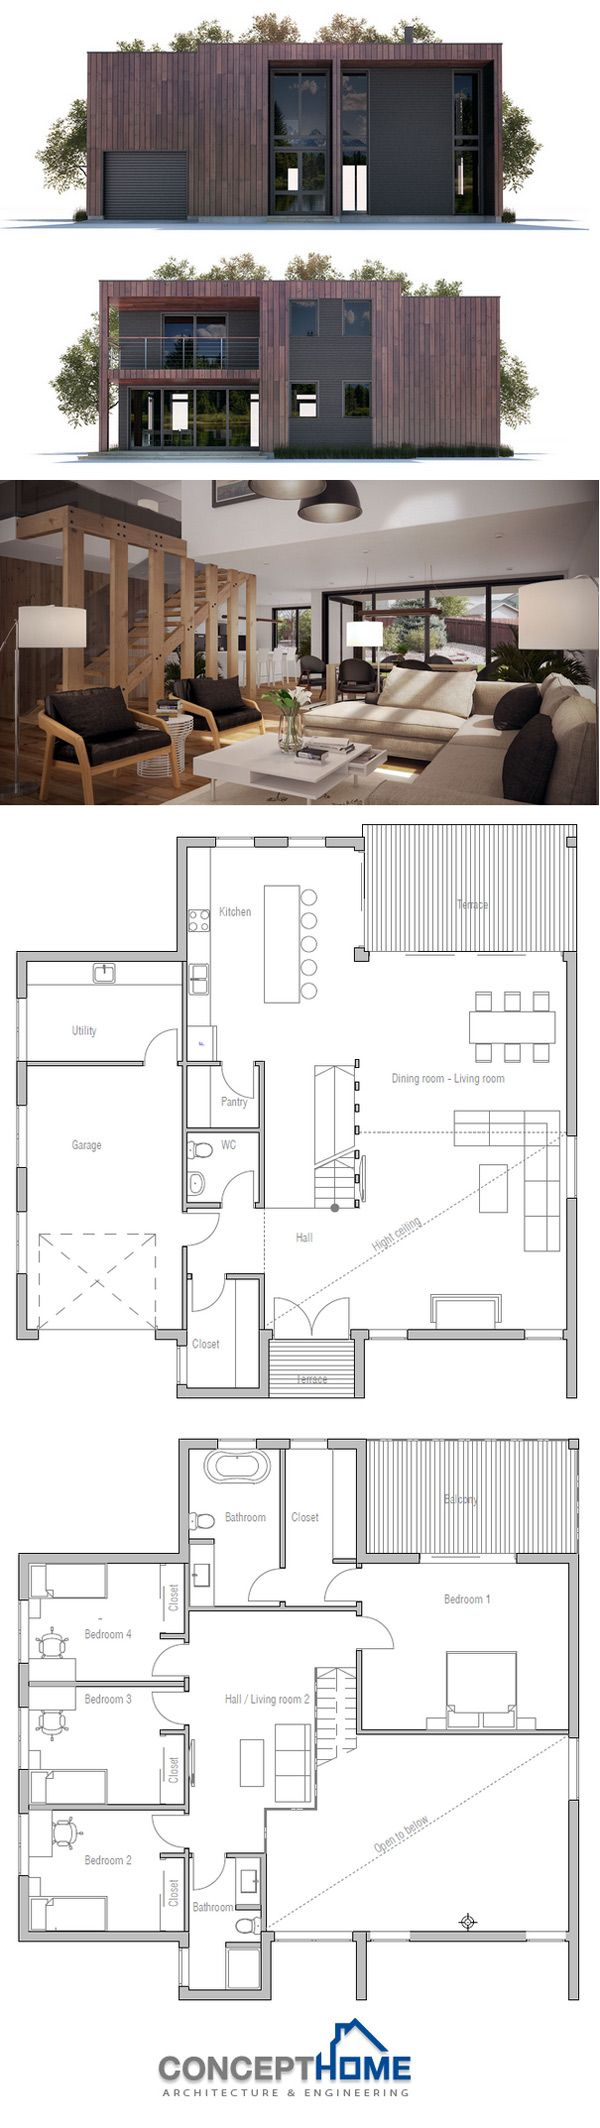 Container house plan de casa moderna more who else wants simple step by step plans to design and build a container home from scratch